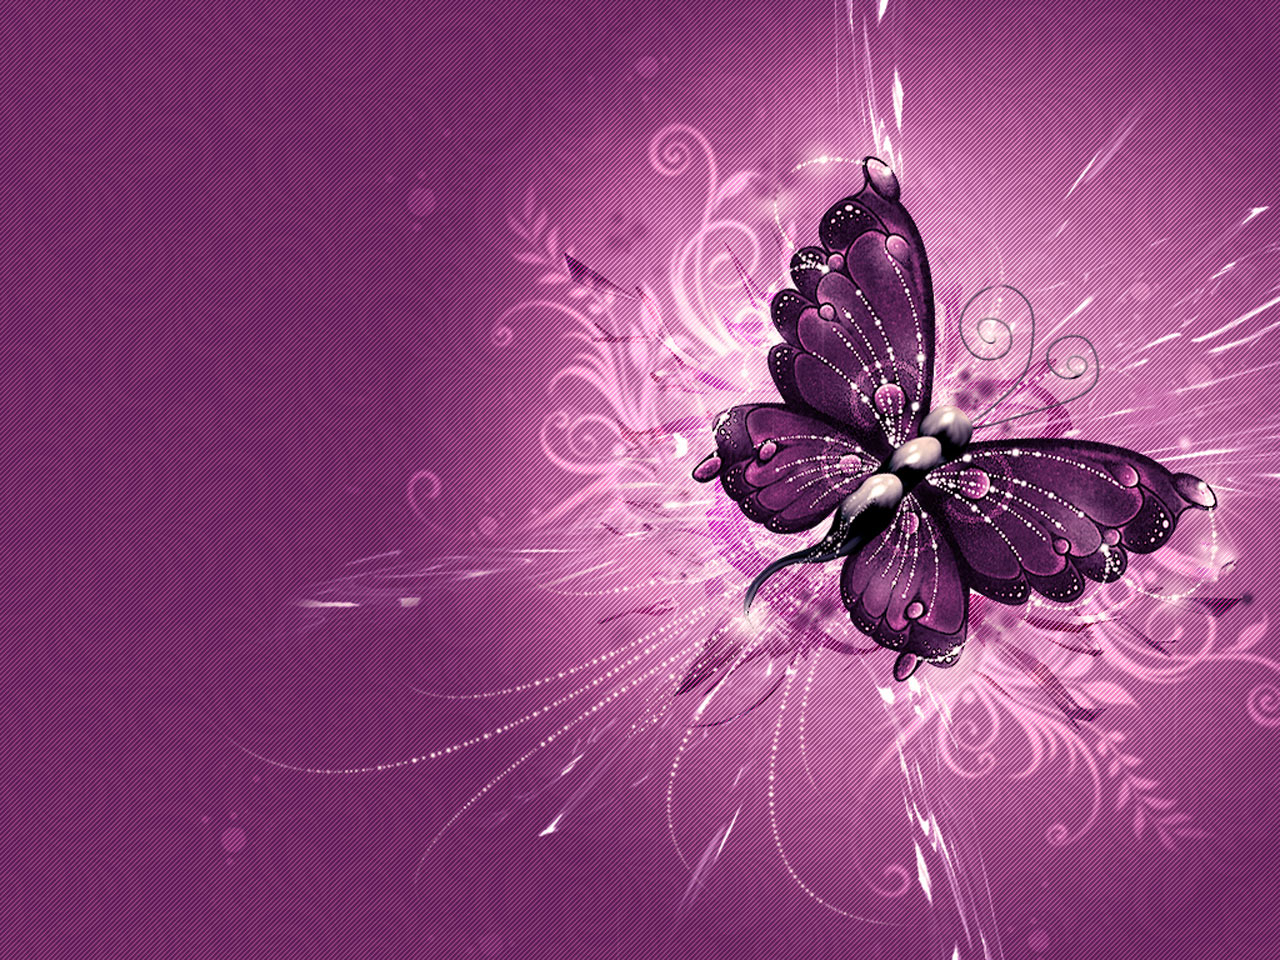 Wallpaper Butterfly Wallpaper Butterfly Wallpaper Butterfly Wallpaper